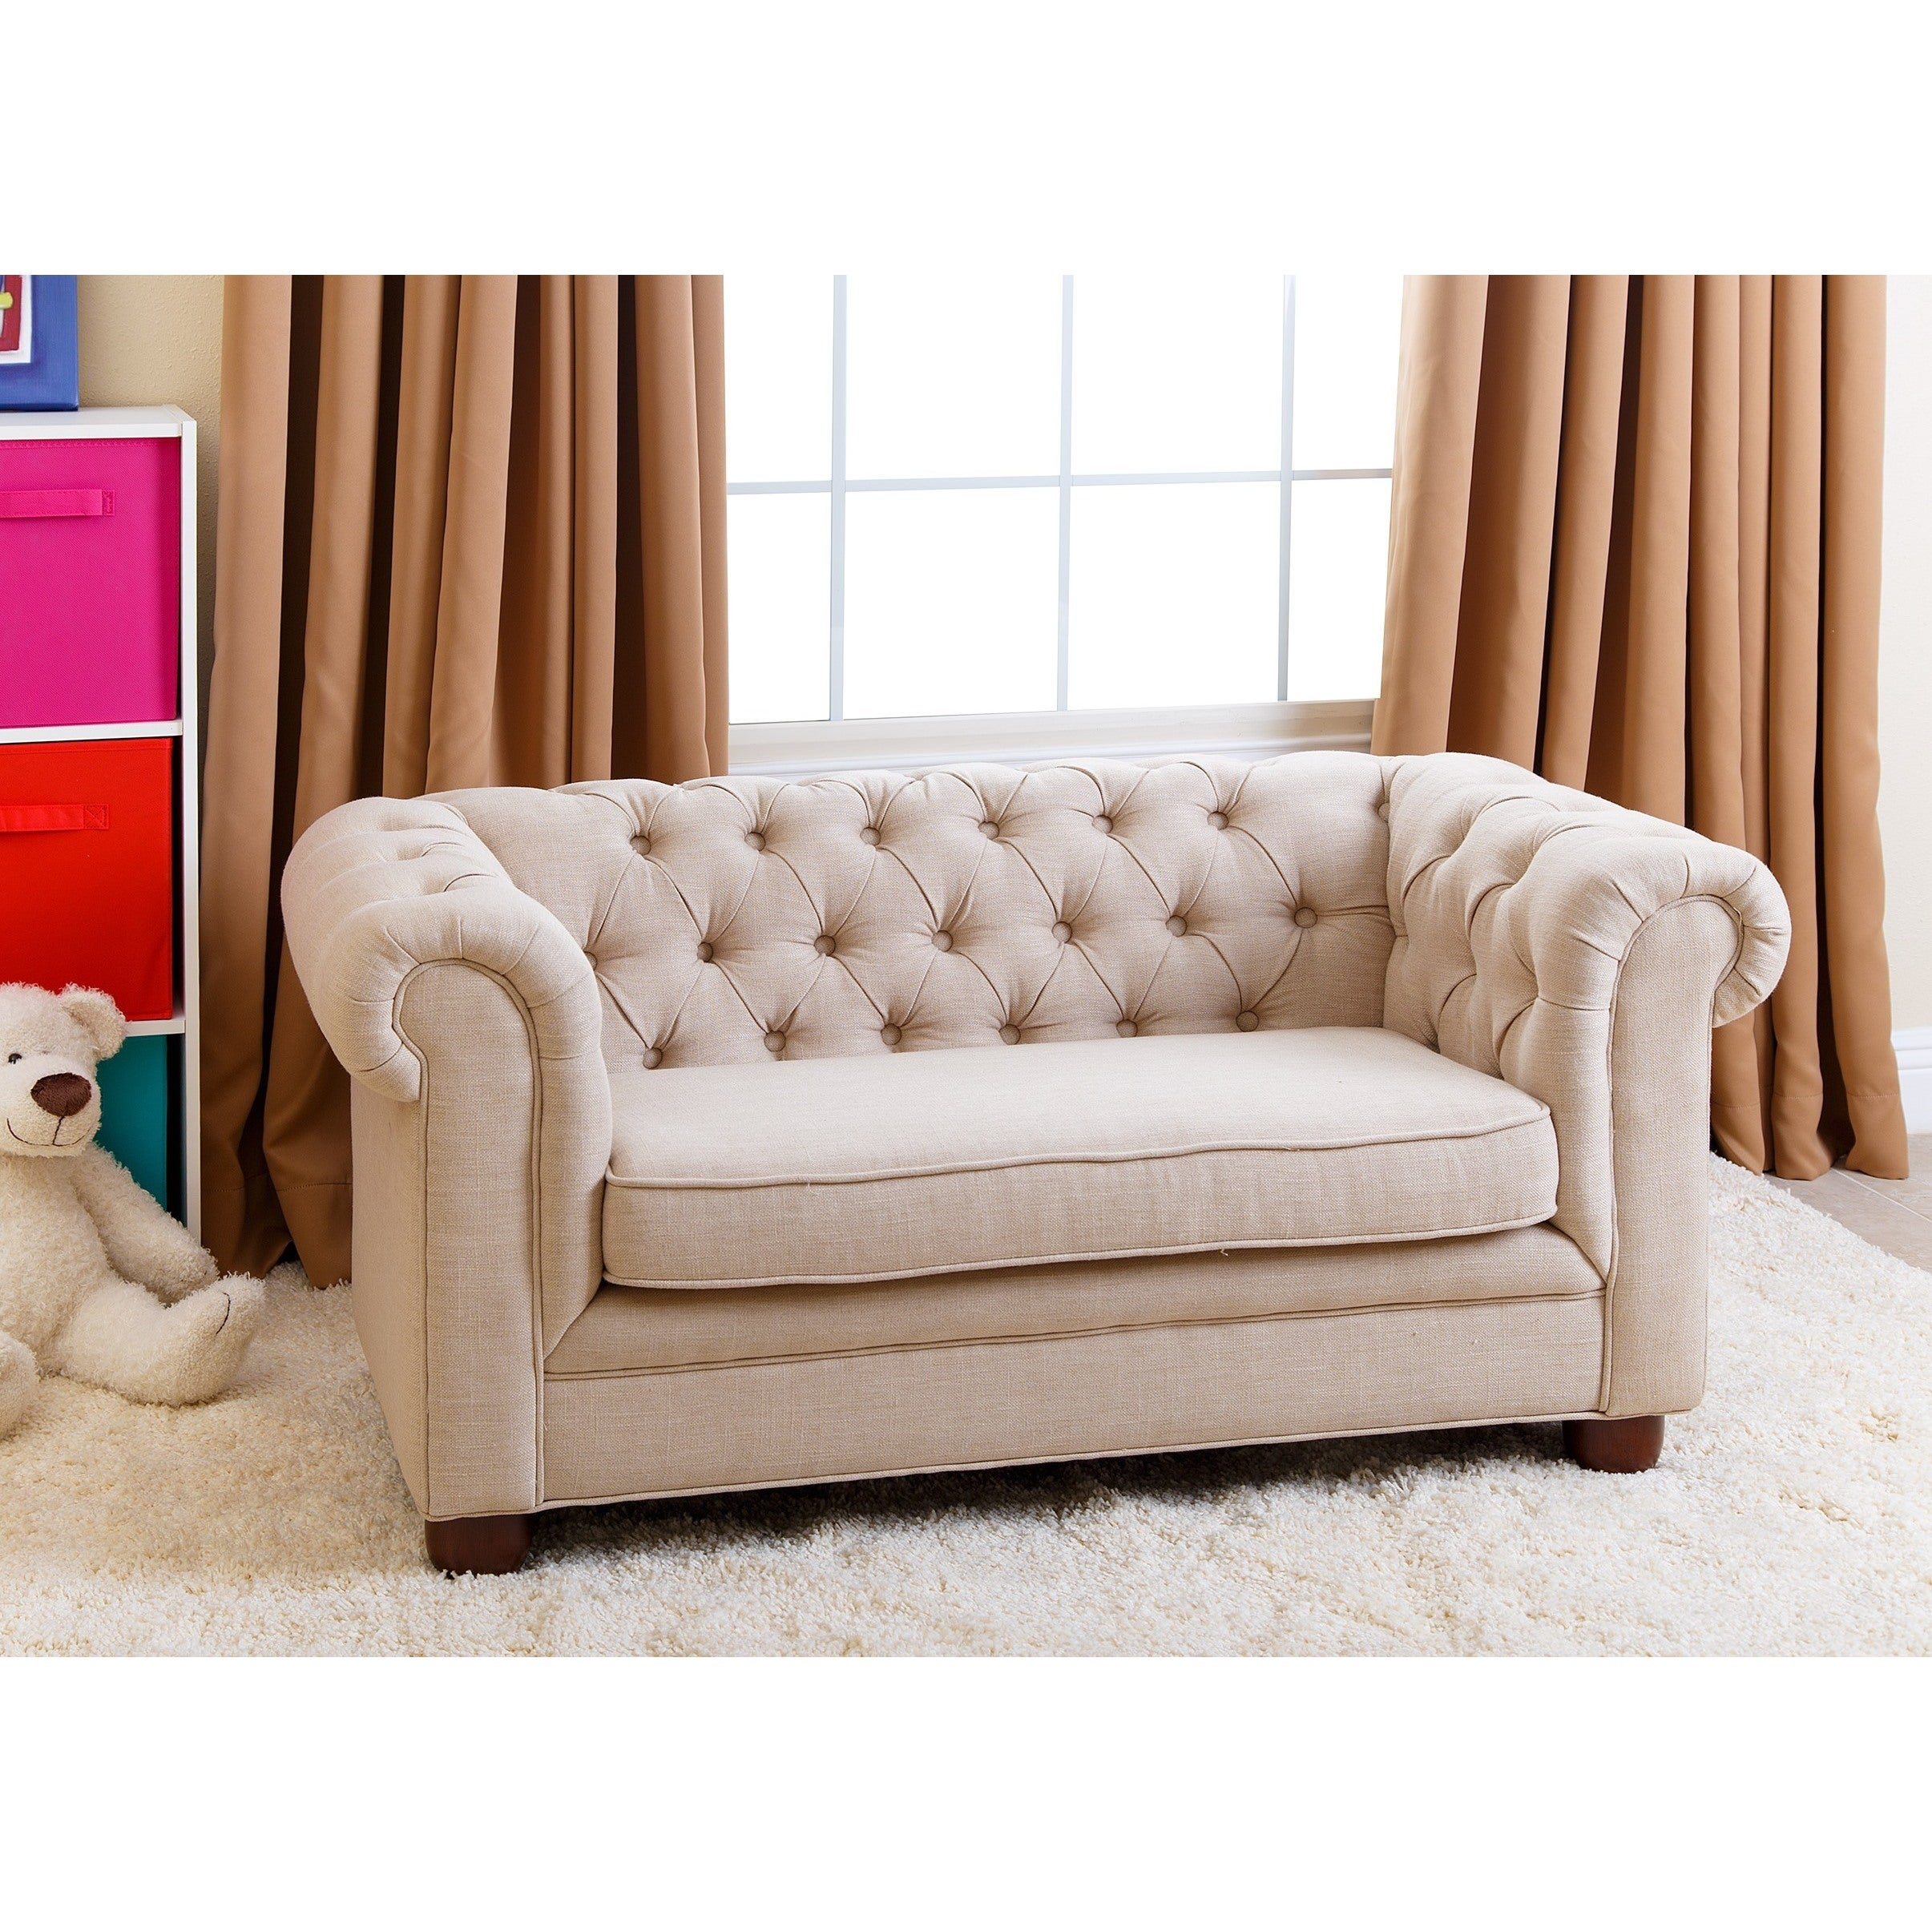 kid astounding designs hotornotlive home toddlers chair for sized couch inspirations picture child sofa toddler